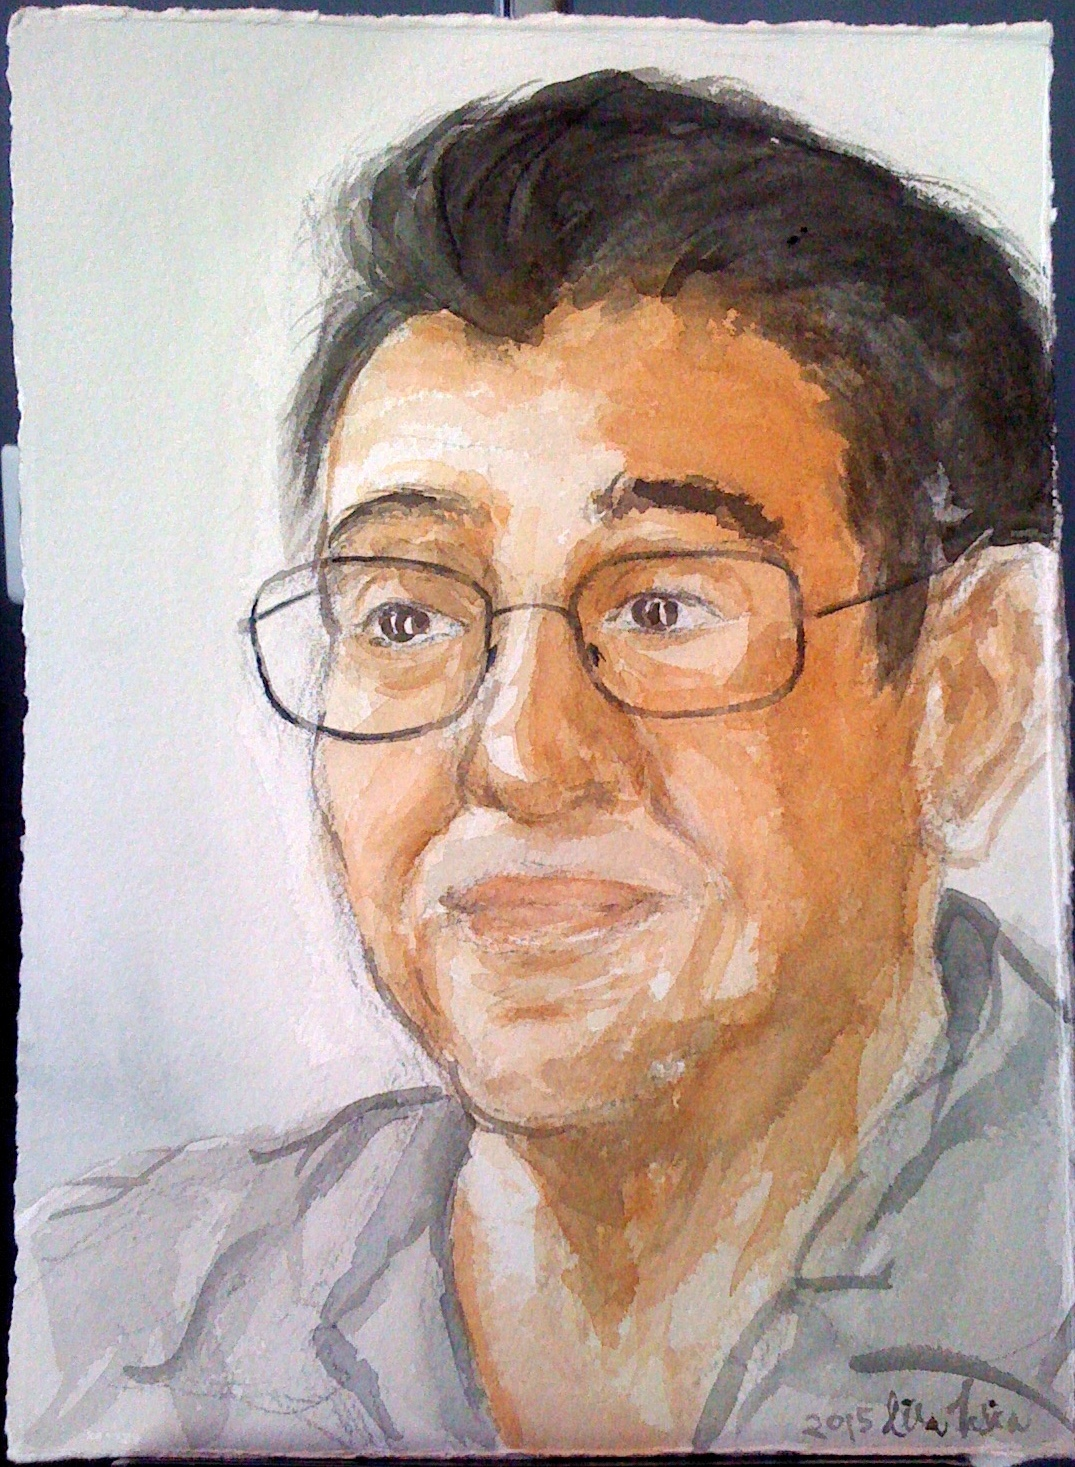 Portrait of Robert in watercolor, 2015